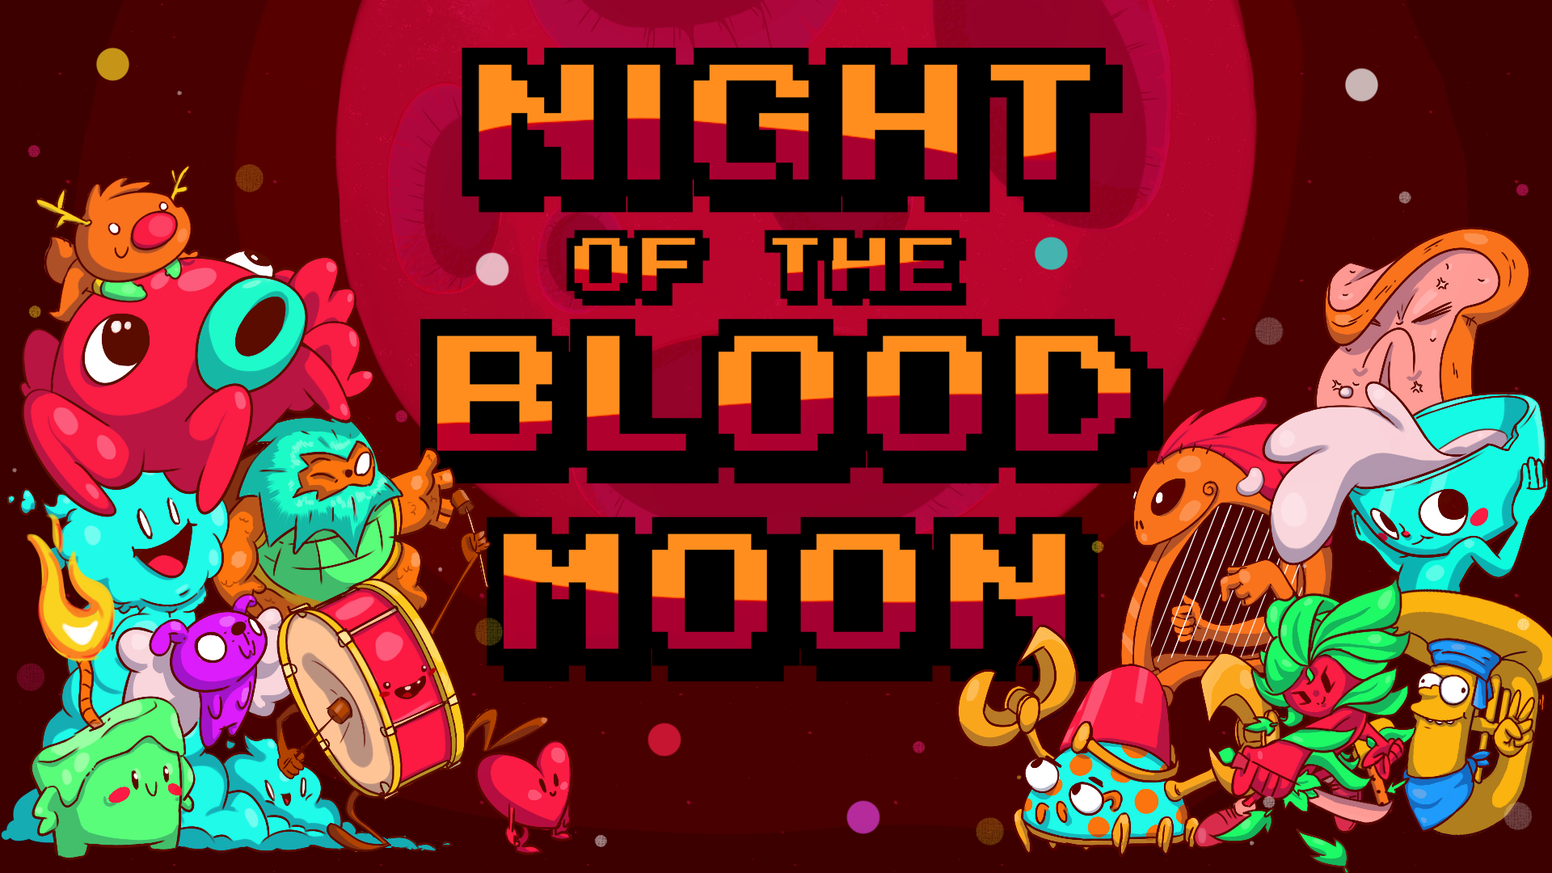 Use the power of the blood moon to destroy the cute creatures of our dreams. Become the nightmare, and utilize weapons of destruction!